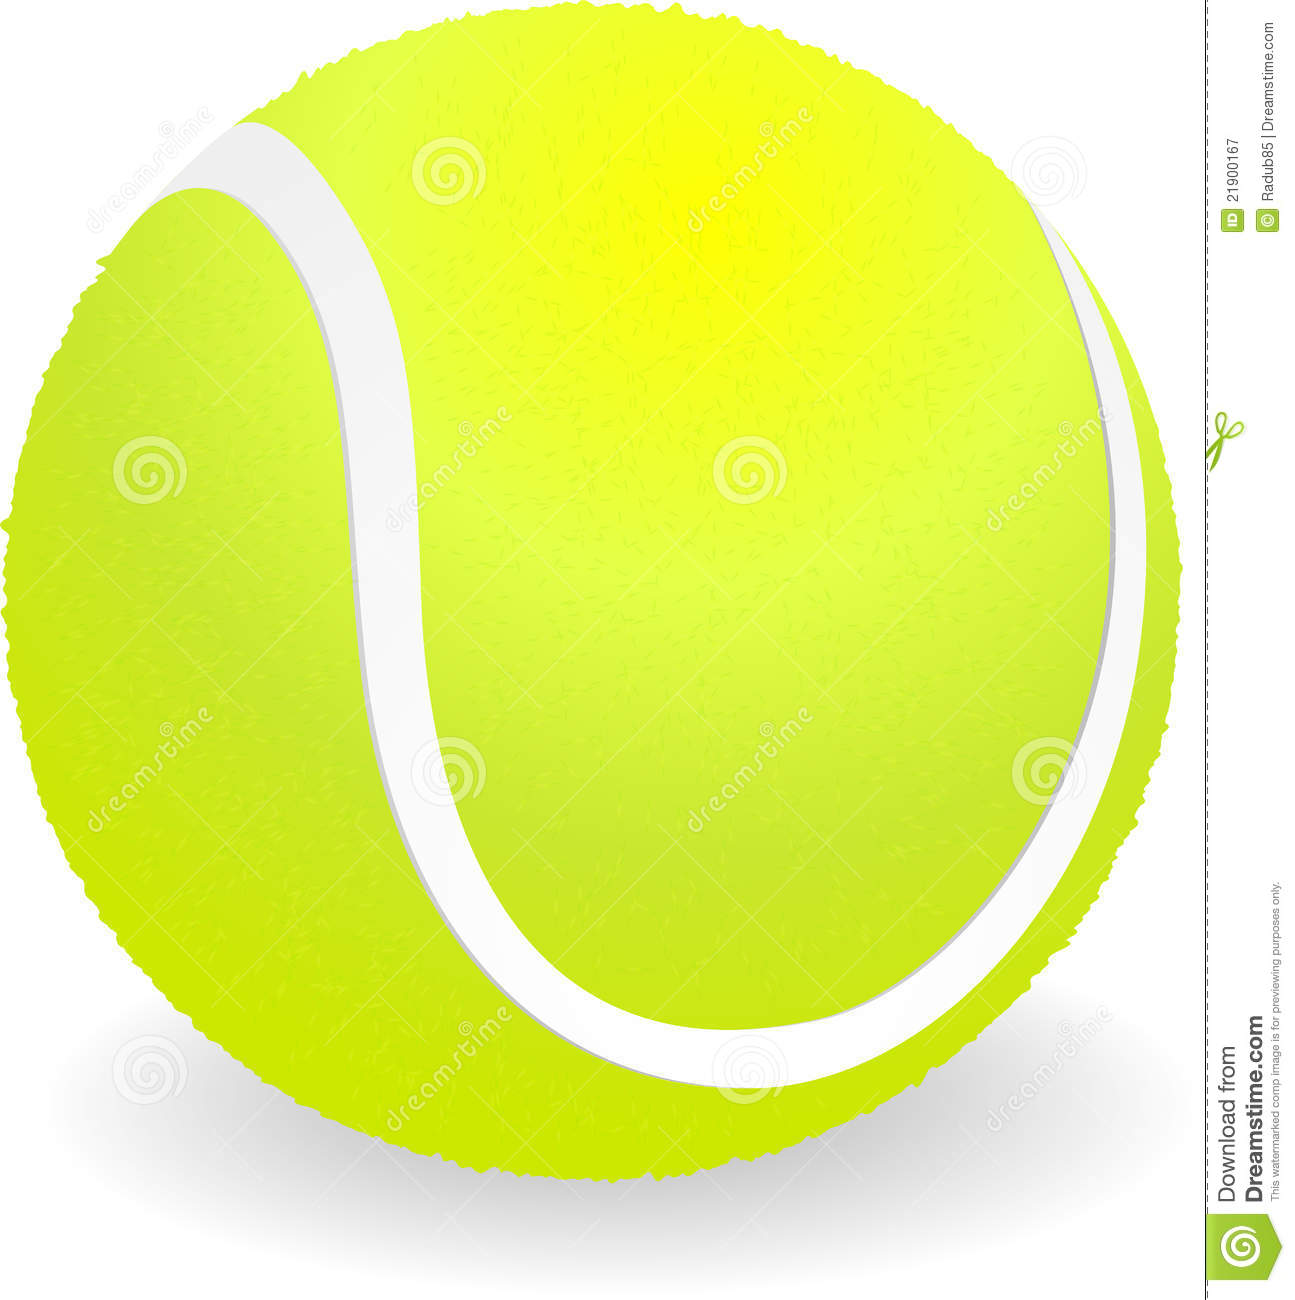 Tennis Ball Royalty Free Stock .